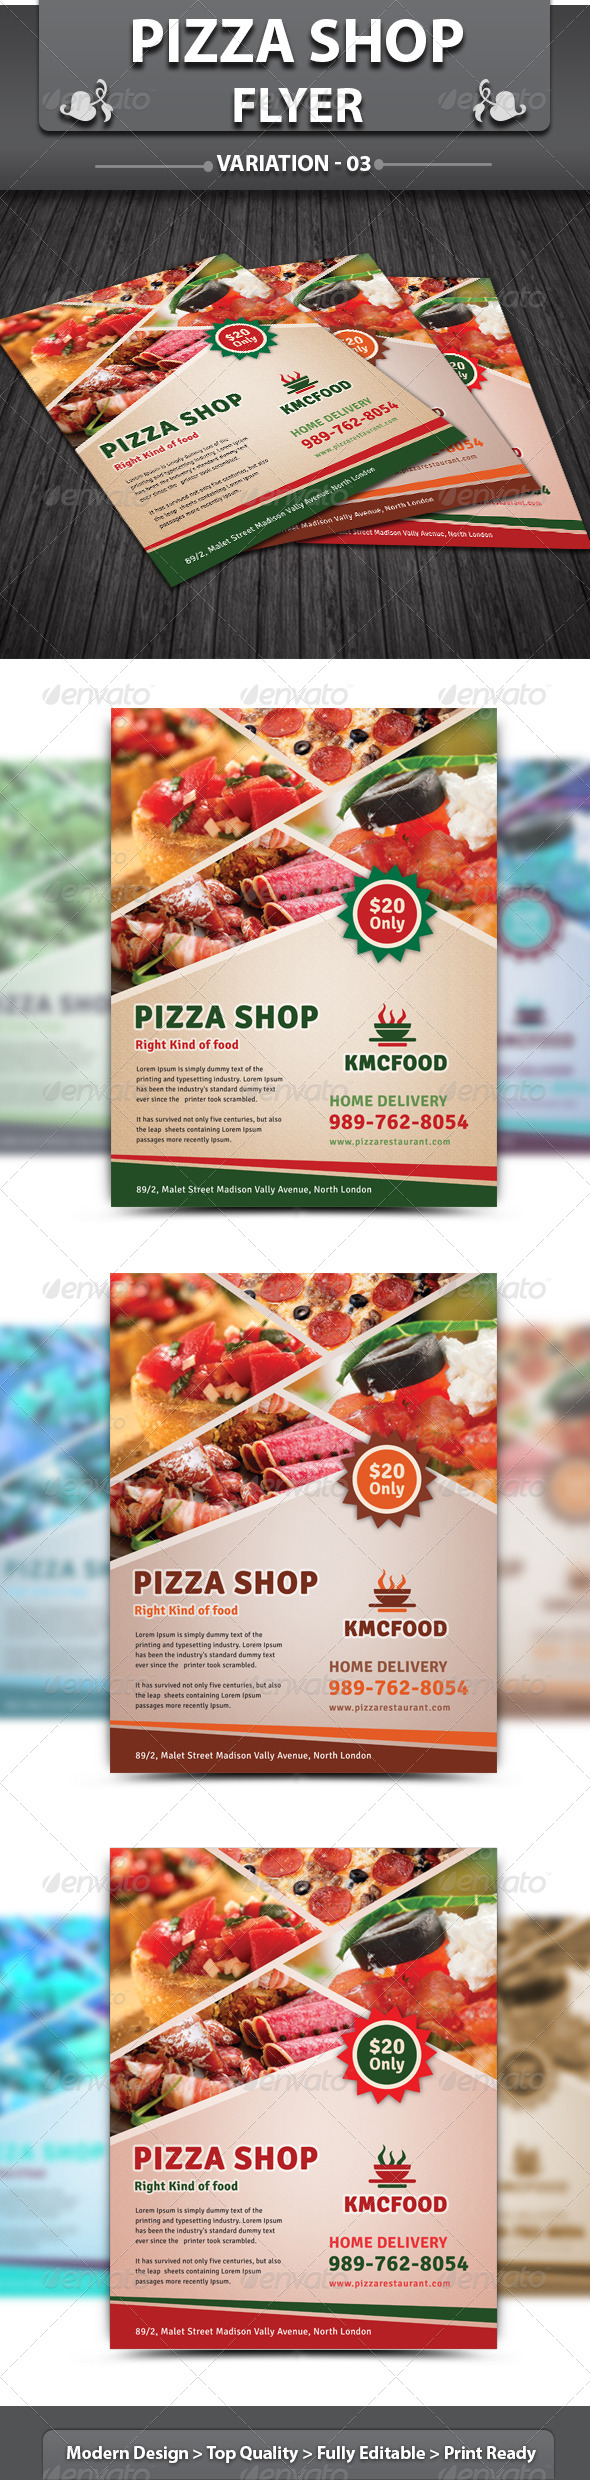 GraphicRiver Pizza Shop Flyer 4685986